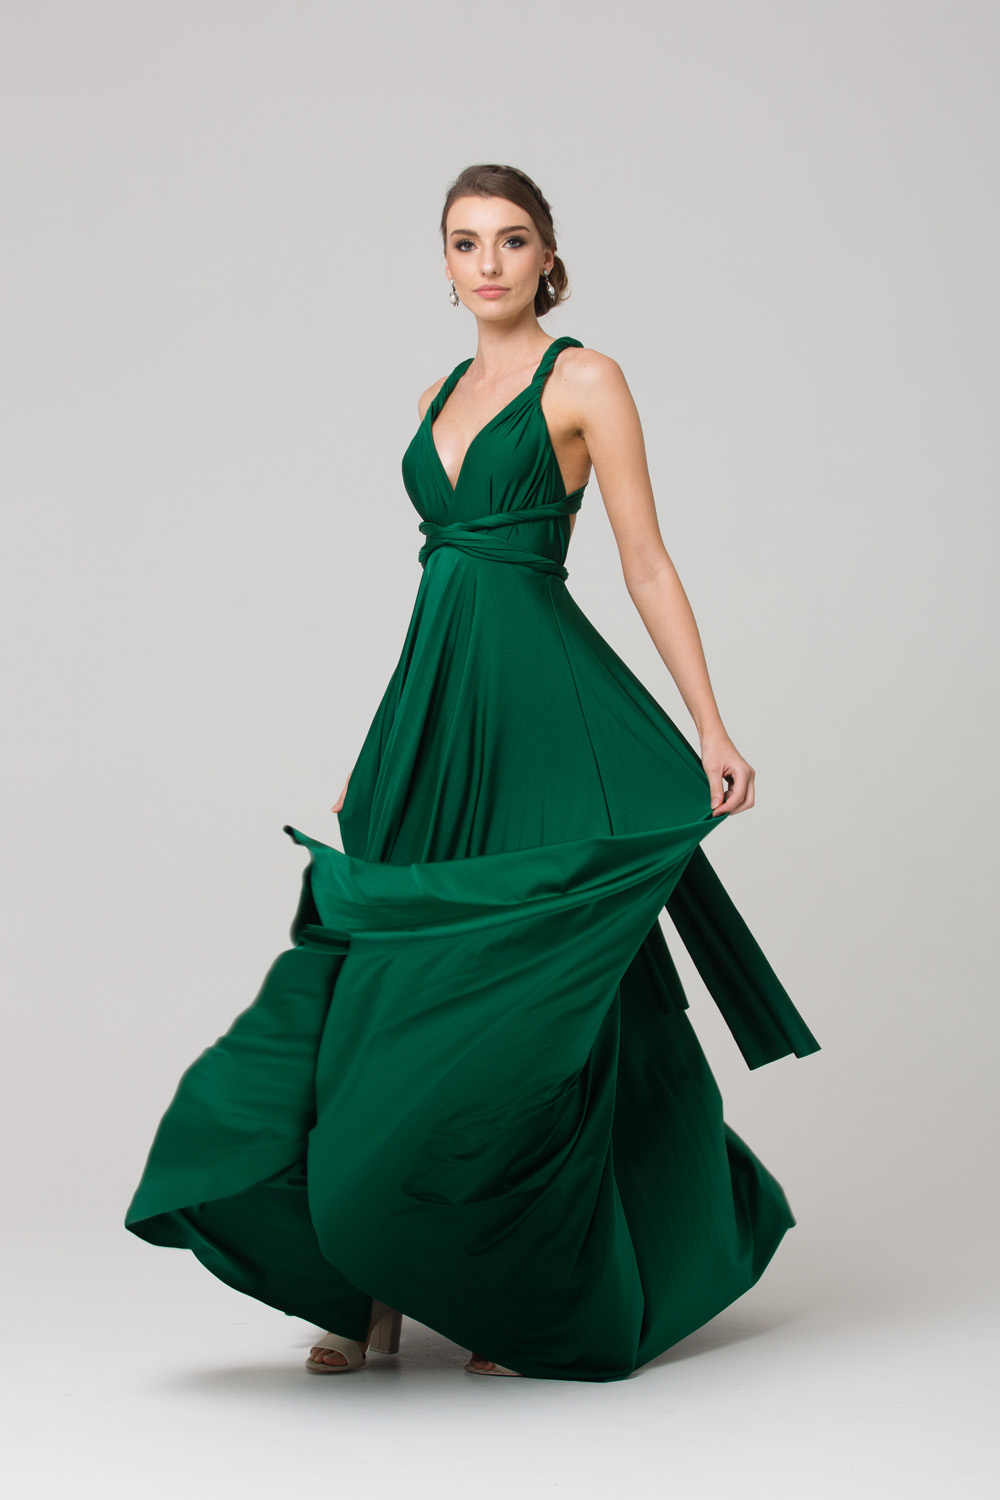 PO31 EMERALD WRAP DRESS FULL